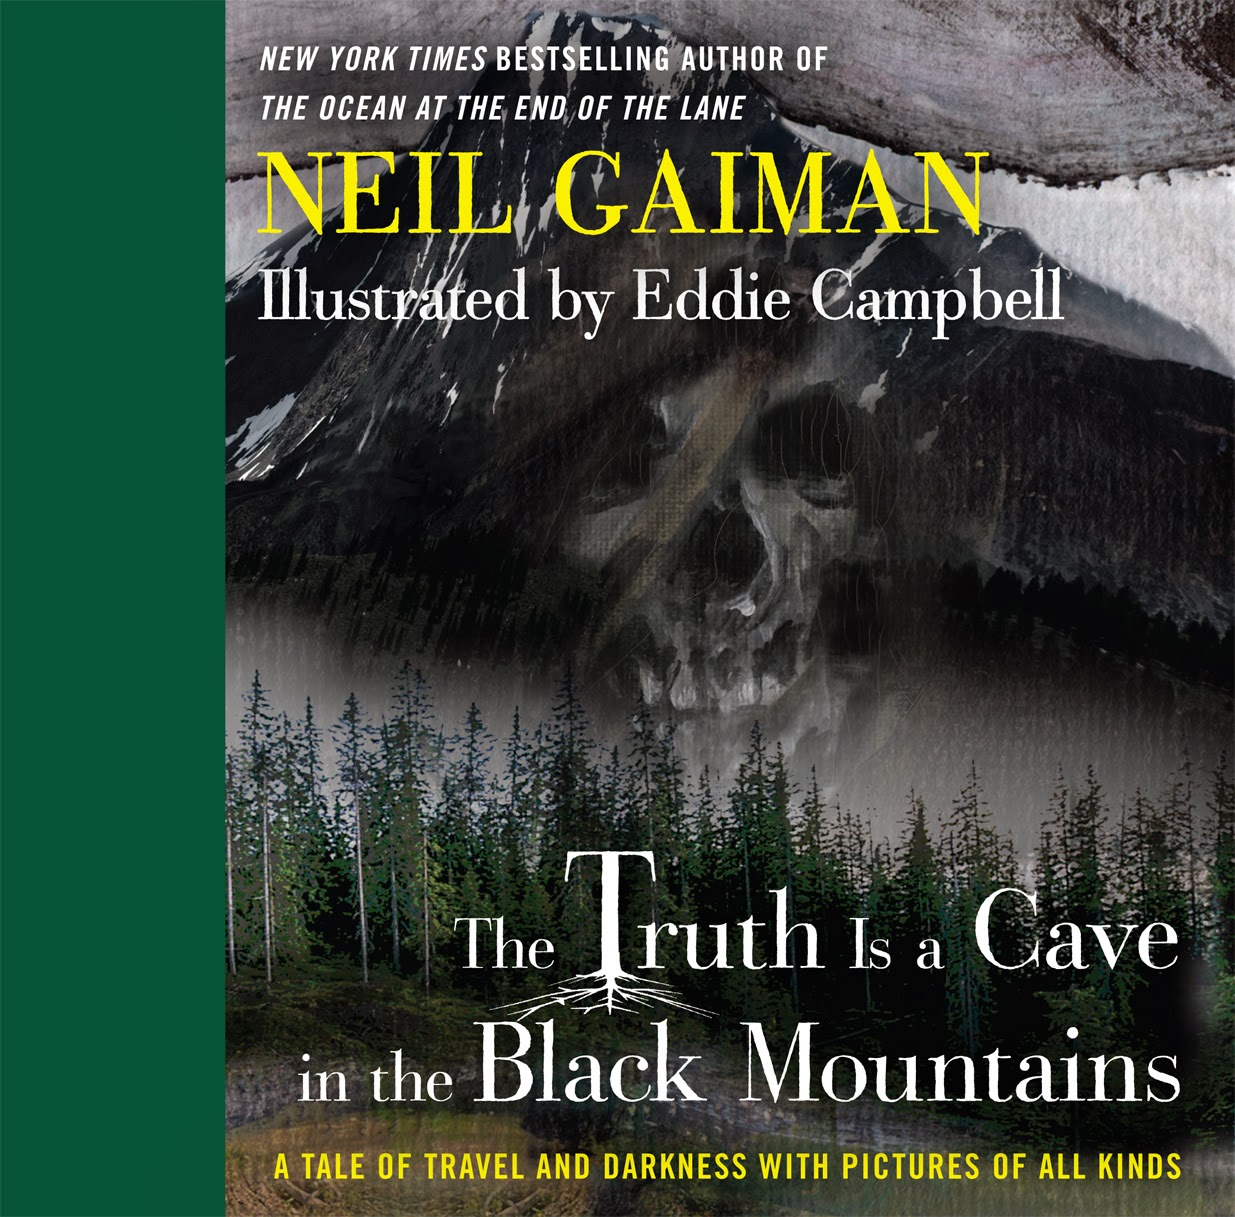 The Truth Is a Cave in the Black Mountains: A Tale of Travel and Darkness with Pictures of All Kinds - Hardback